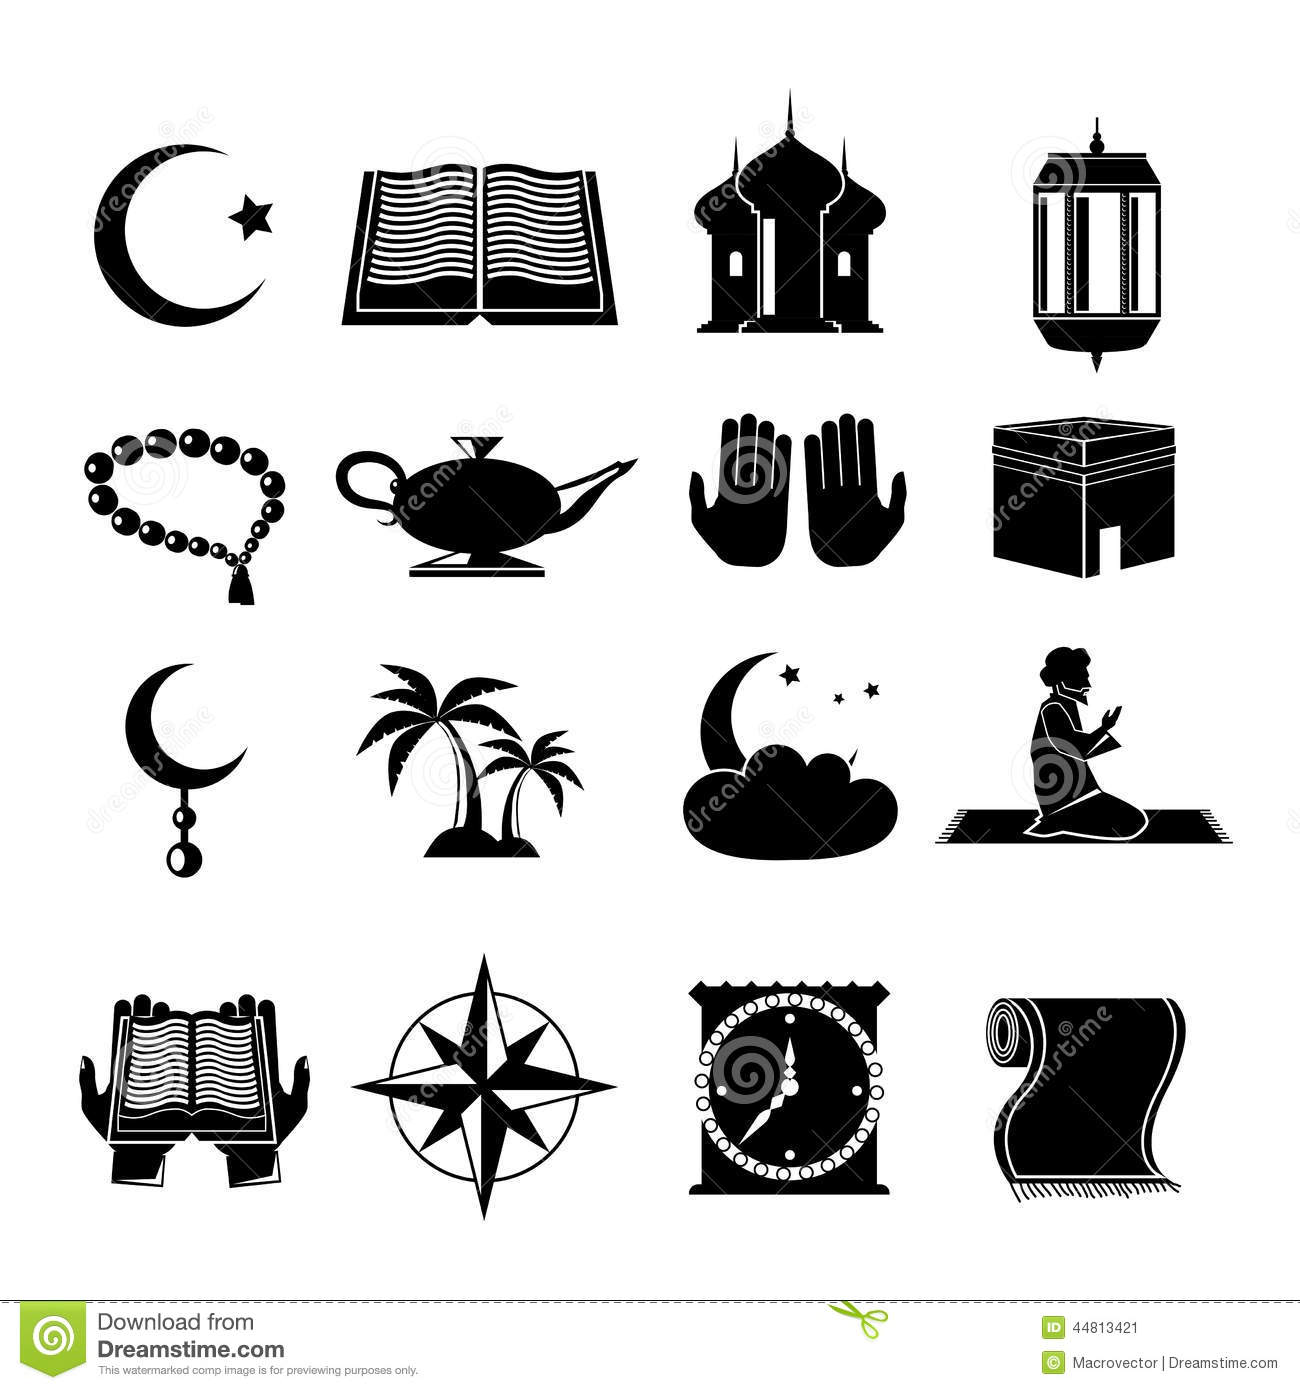 islam icons stock illustrations 6 911 islam icons stock illustrations vectors clipart dreamstime islam icons stock illustrations 6 911 islam icons stock illustrations vectors clipart dreamstime